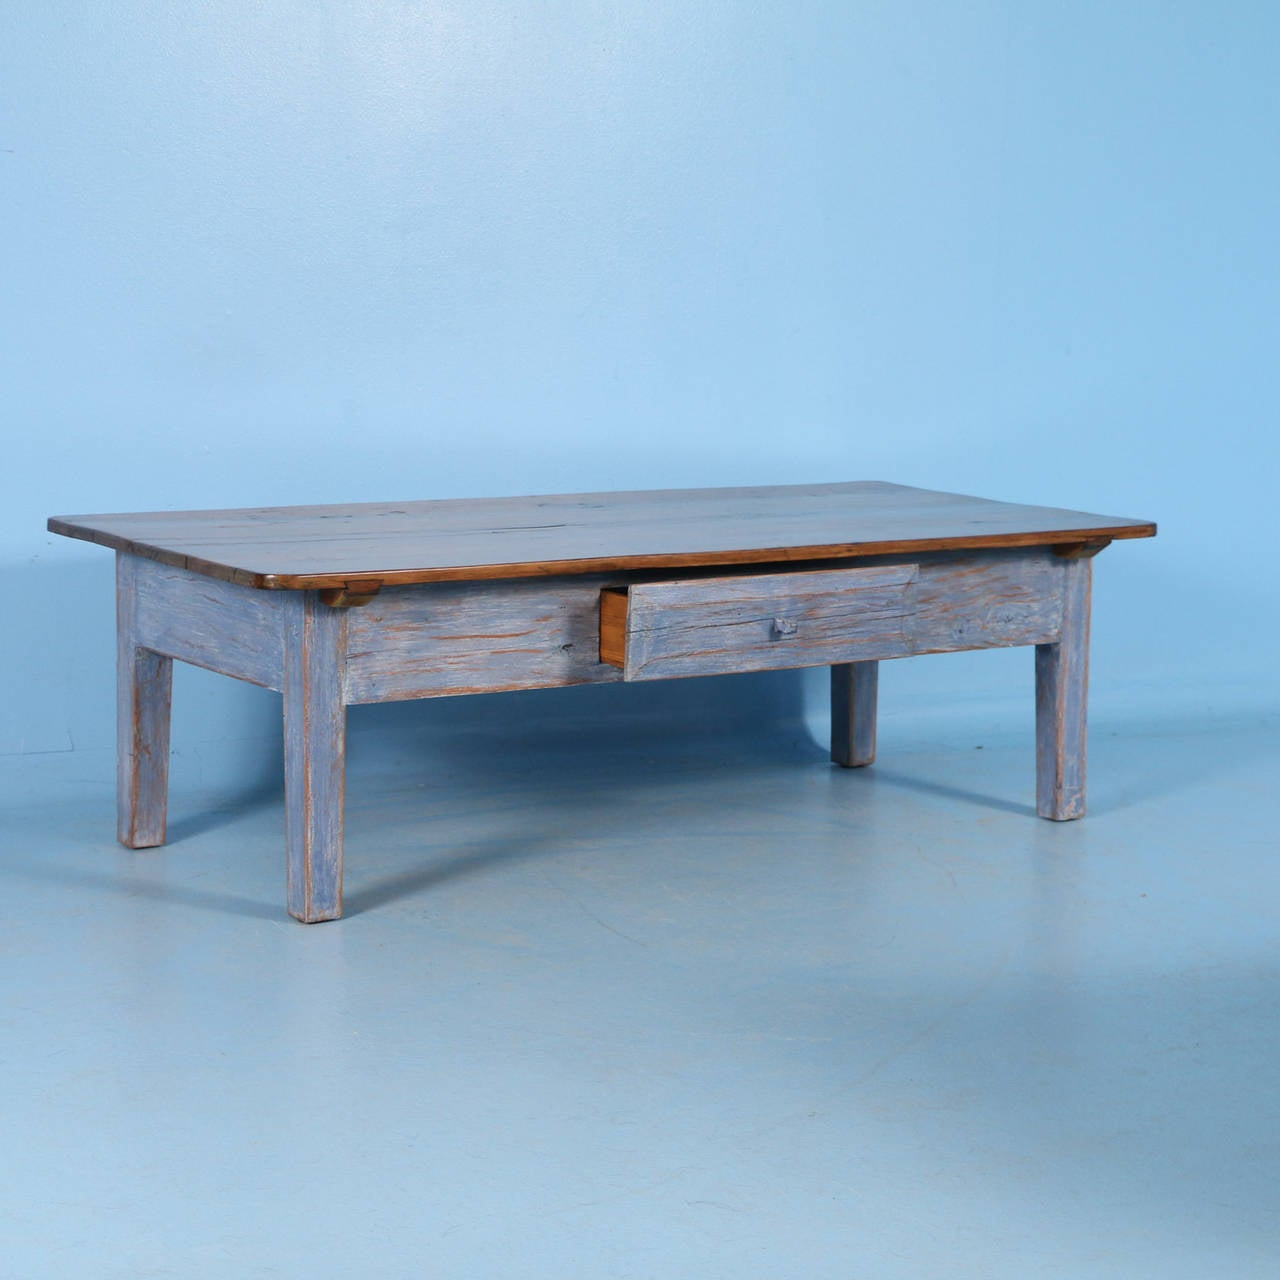 Antique blue swedish pine coffee table circa 1860 1880 at for Pine coffee table